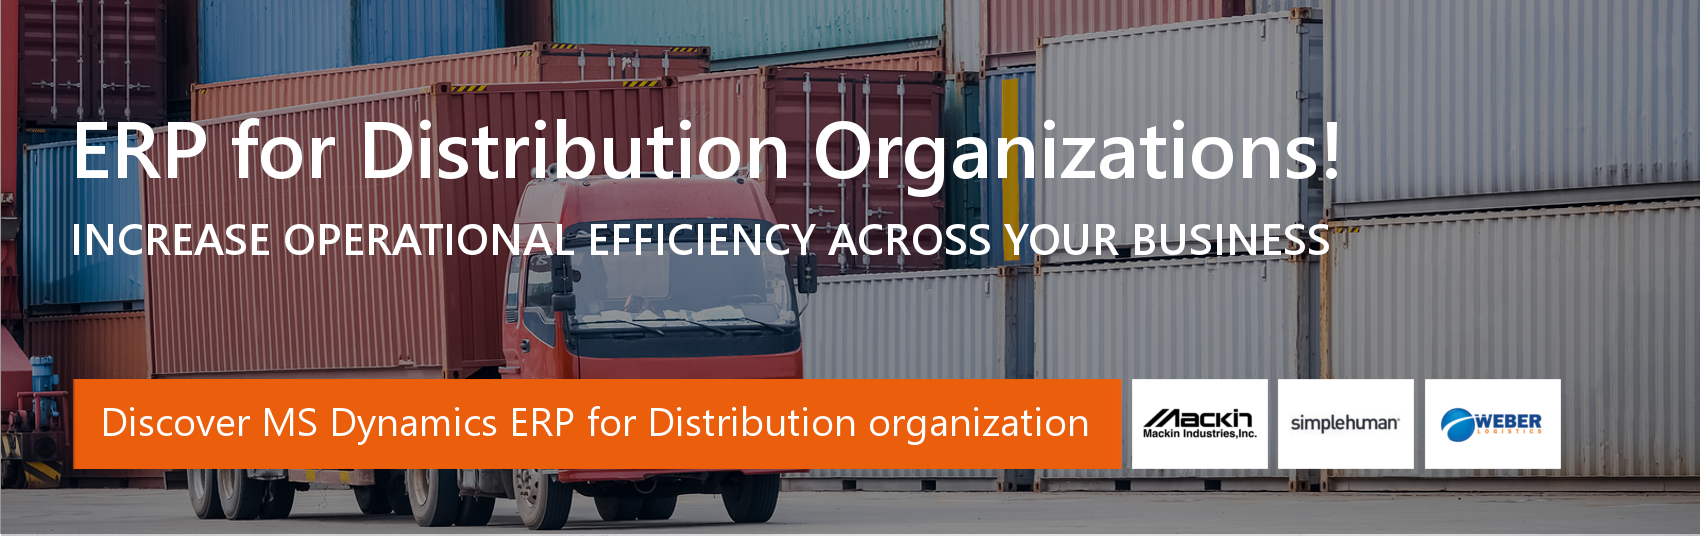 ERP for Distribution Businesses